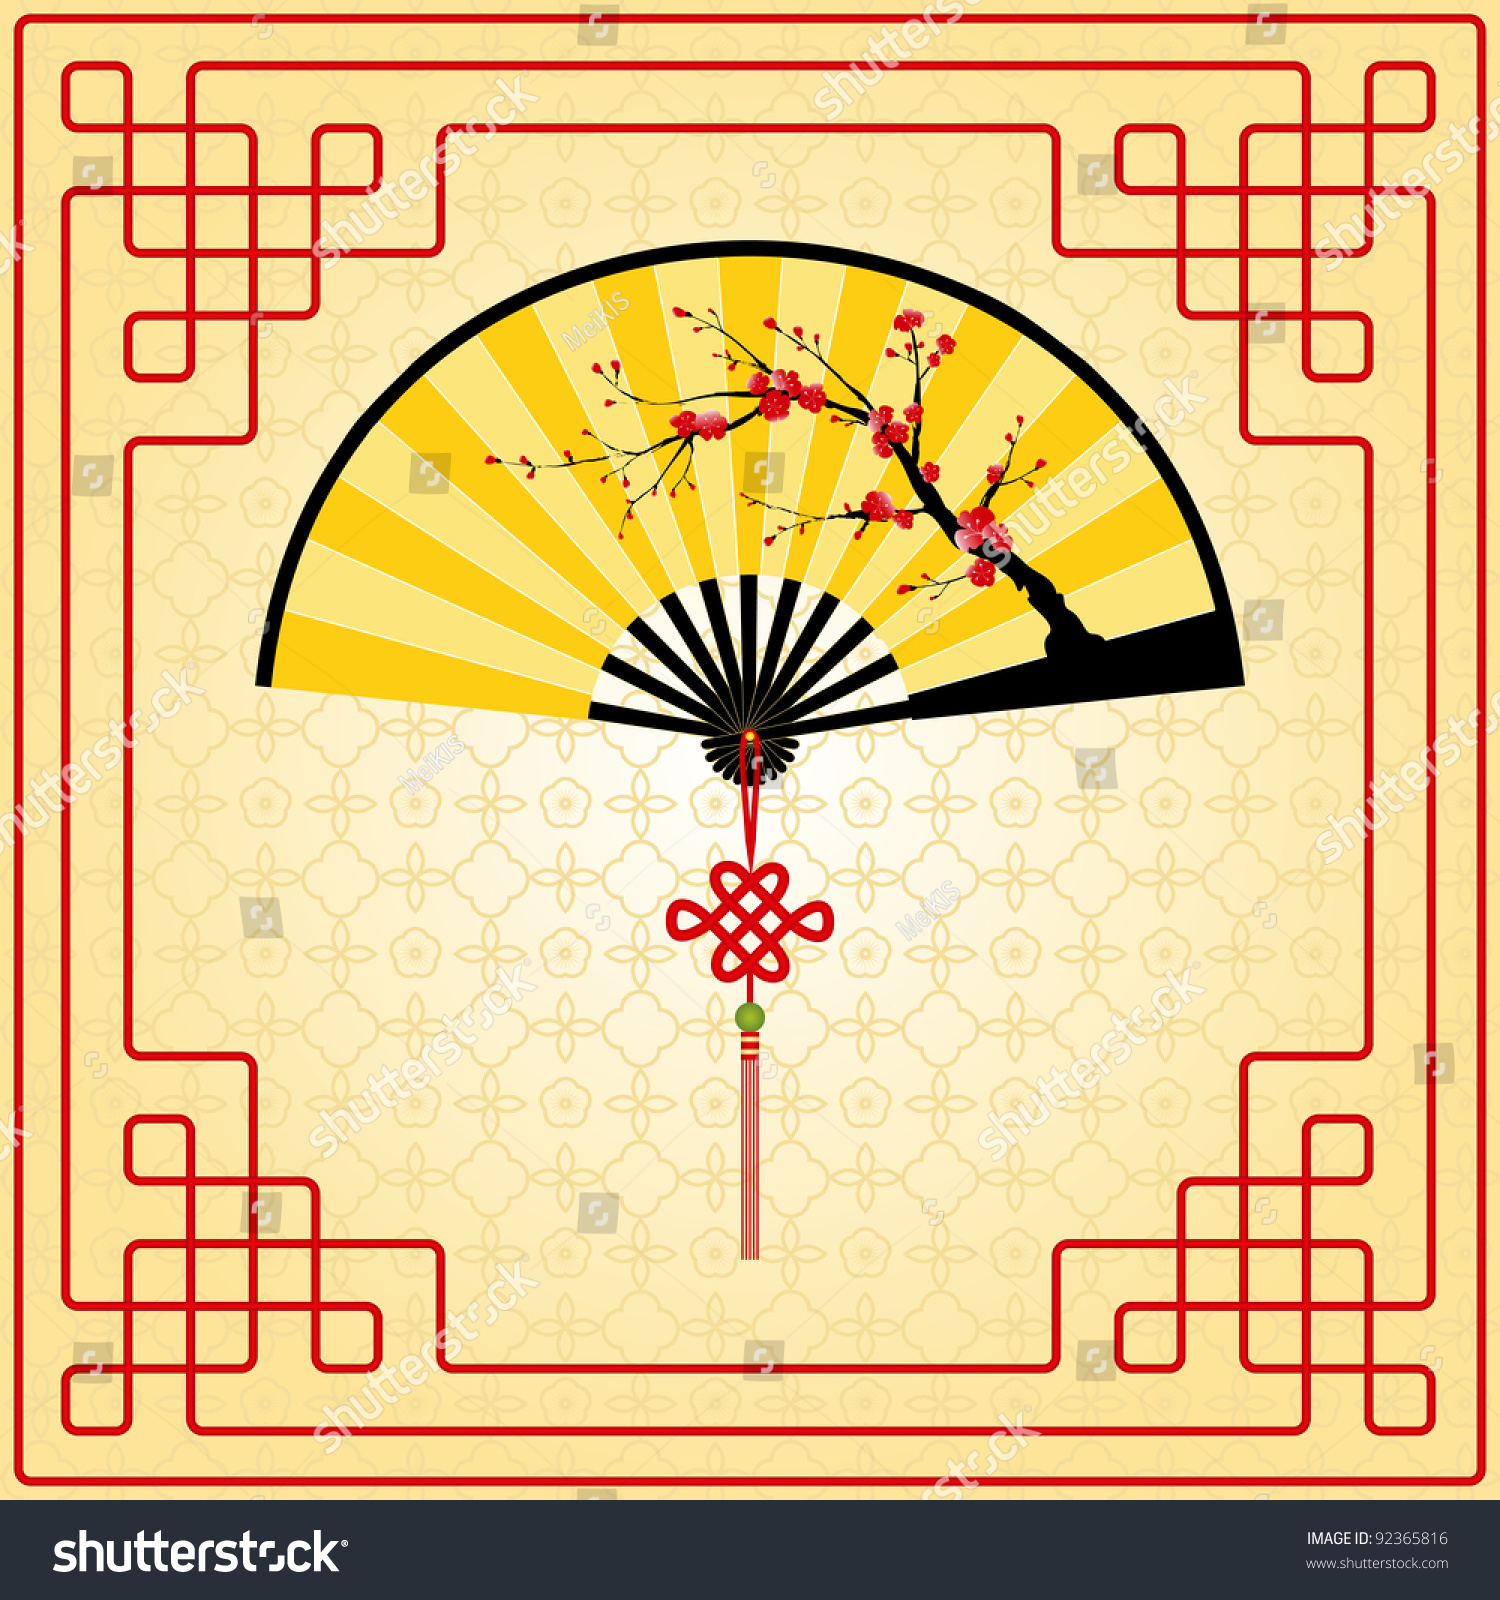 Oriental Style Painting Plum Blossom On Stock Vector (Royalty Free ...